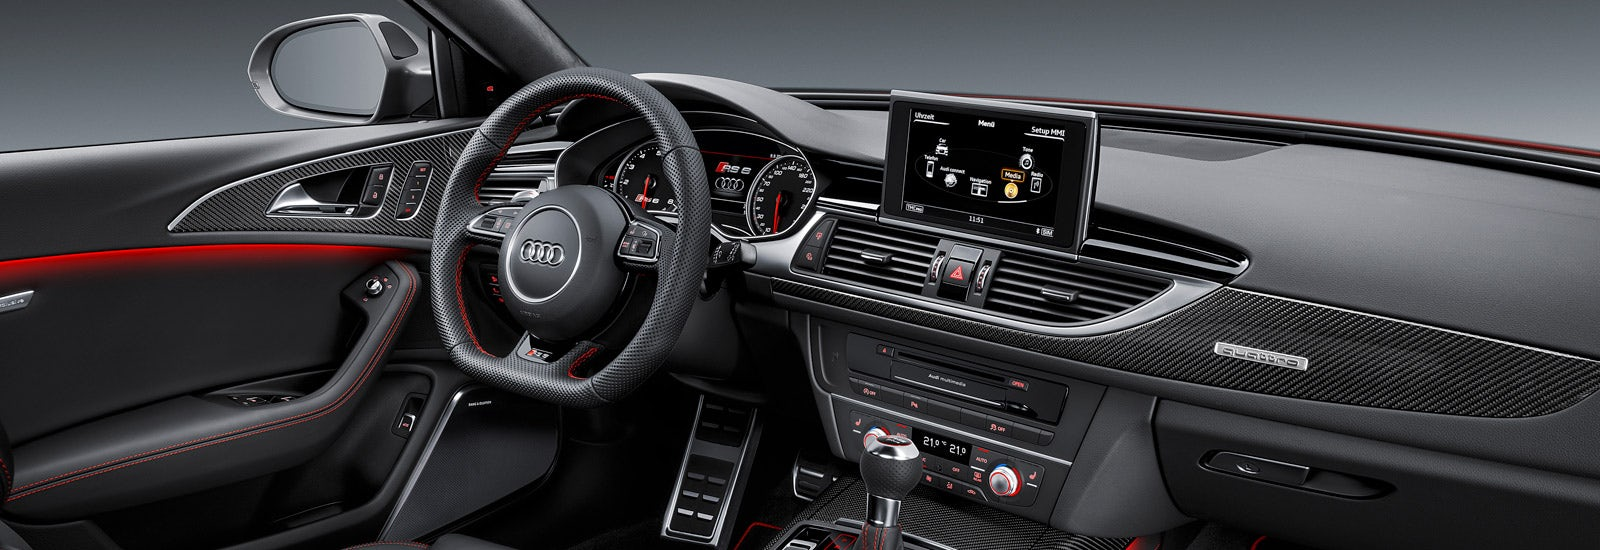 Audi Rs6 And Rs7 Performance Models Revealed Carwow 2017 Sportback With A Red Colour The Interior Of Include As Standard Supportive Alcantara Rs Super Sport Seats Coded Carbon Fibre Detailing